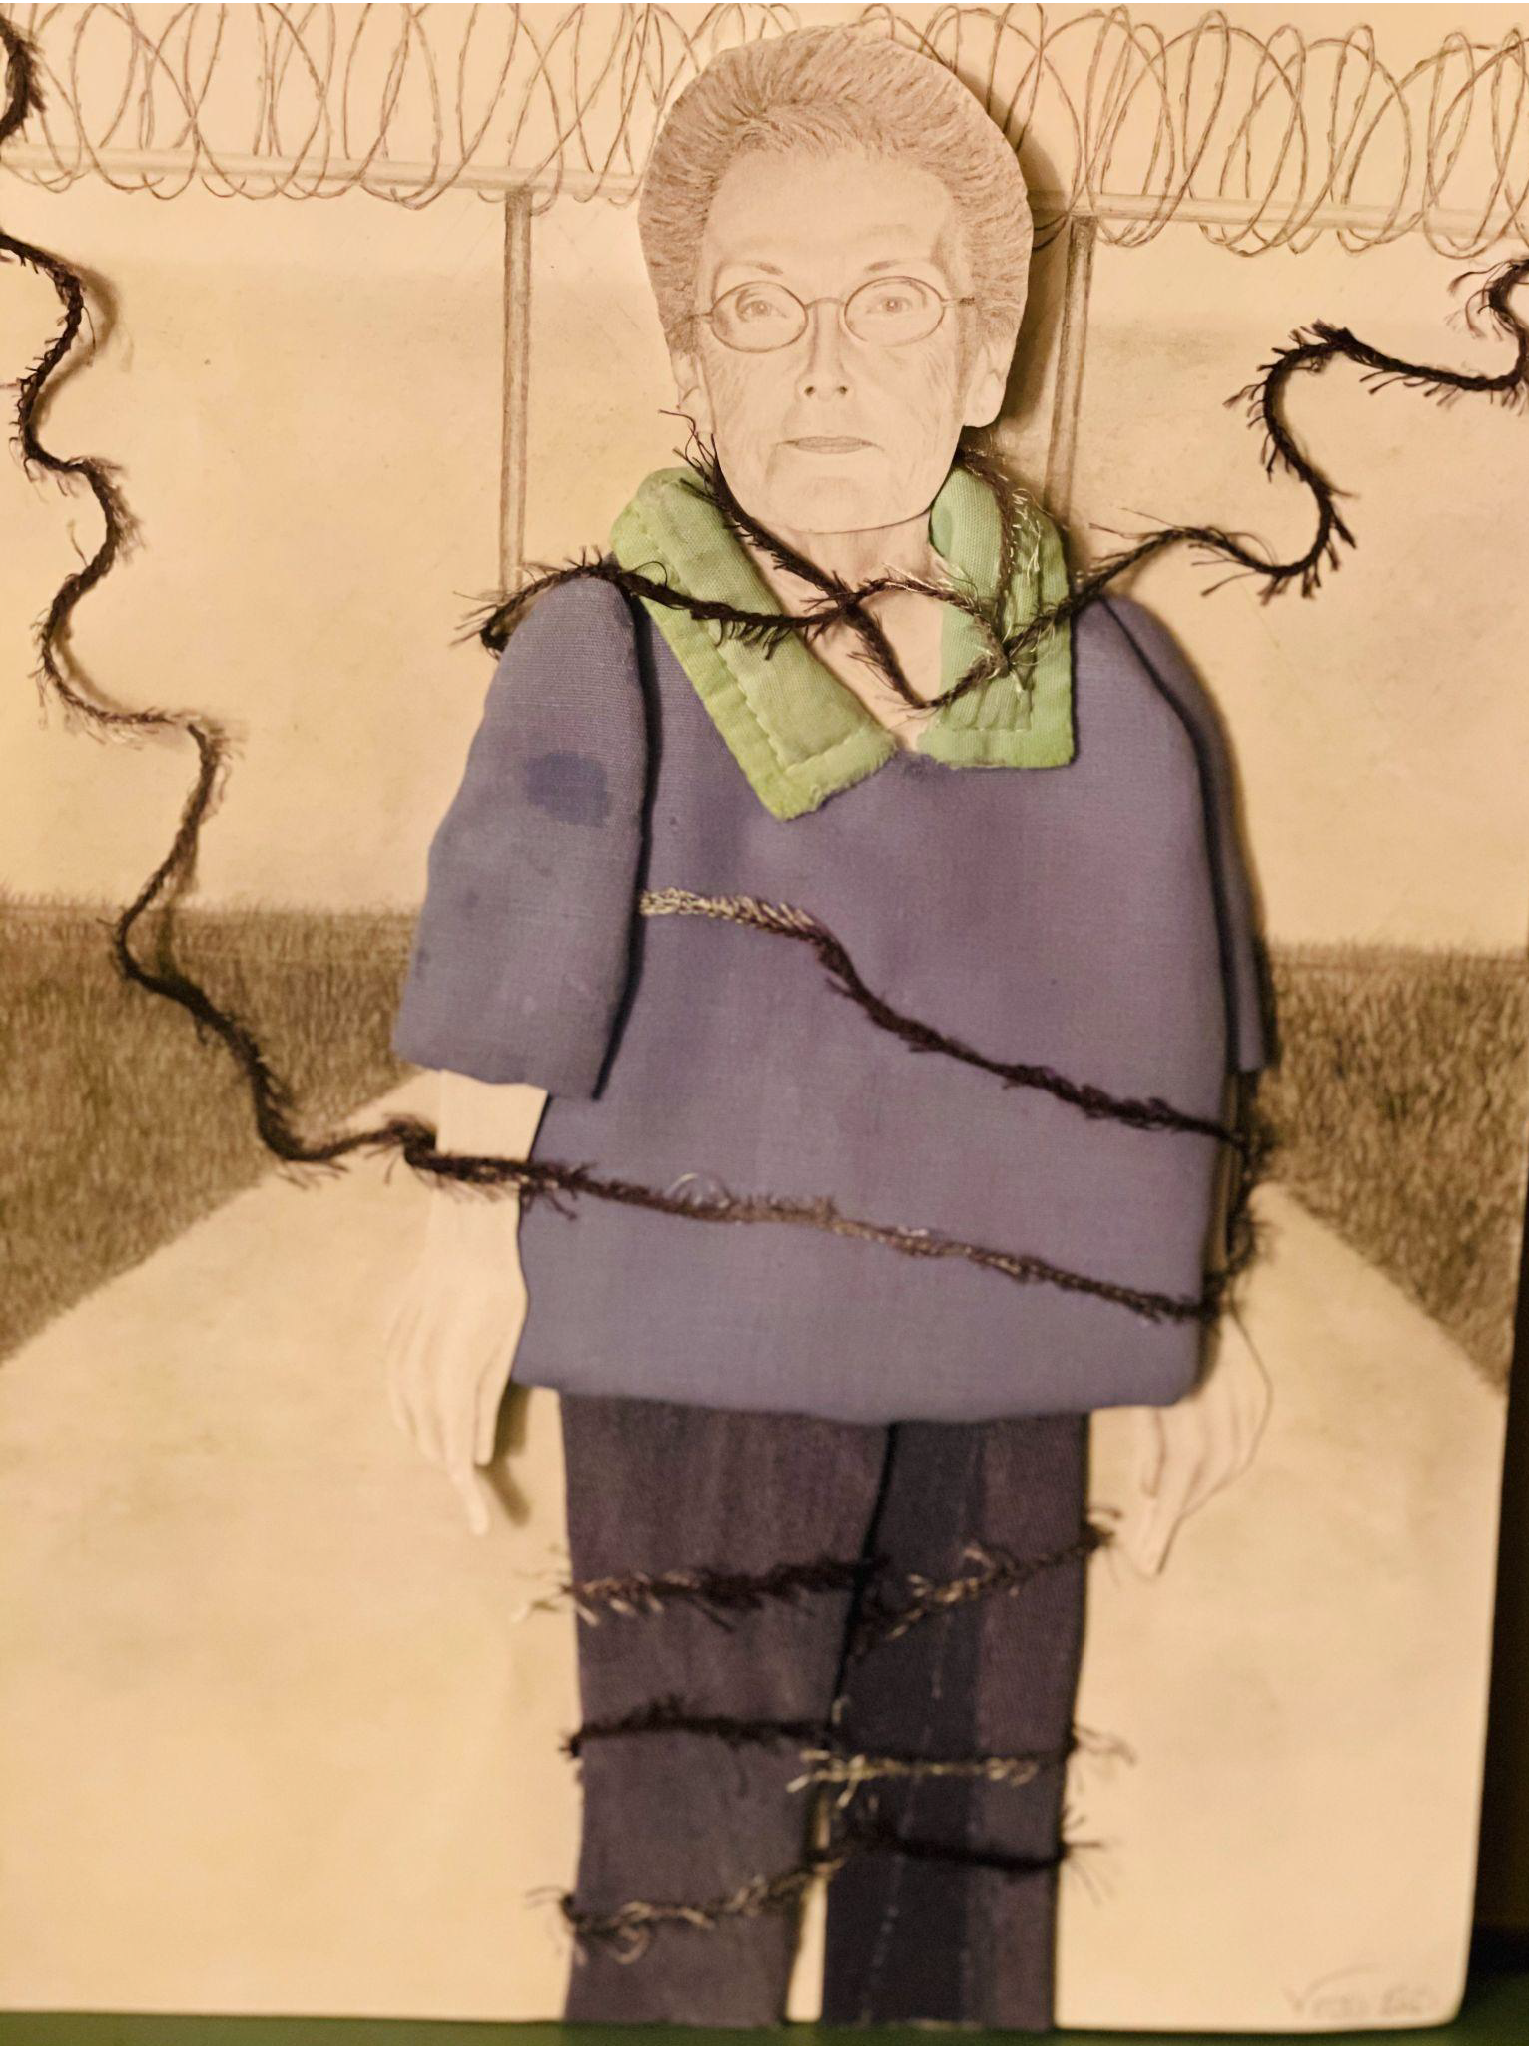 Textile display of a woman standing in front of a barbed wire fence drawn in pencil. She is wearing a purple sweater composed of fabric with a black thread wrapped around her limbs.